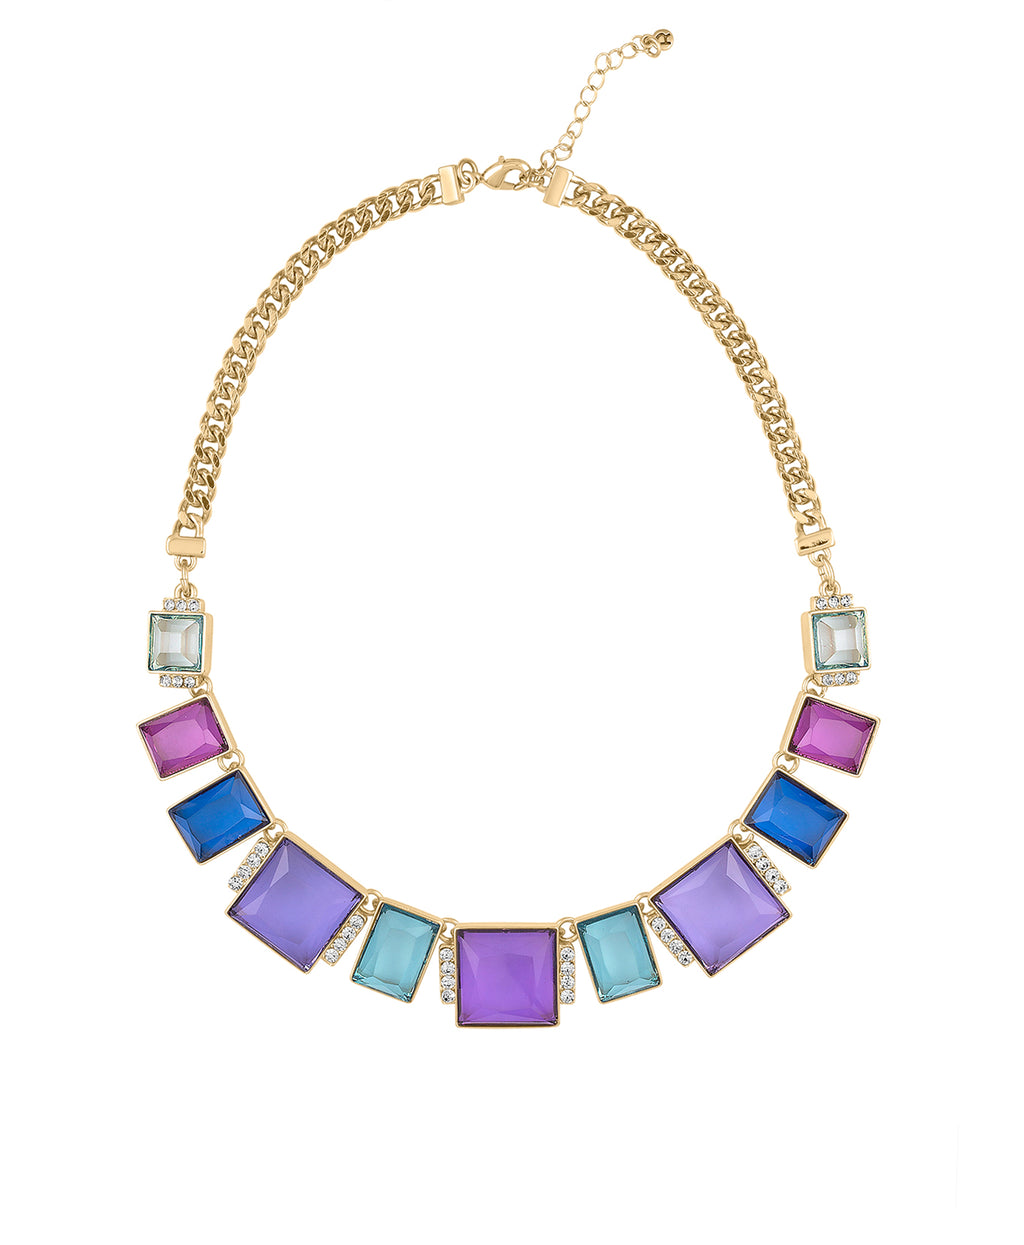 Gem Palace necklace  | Gem Palace necklace